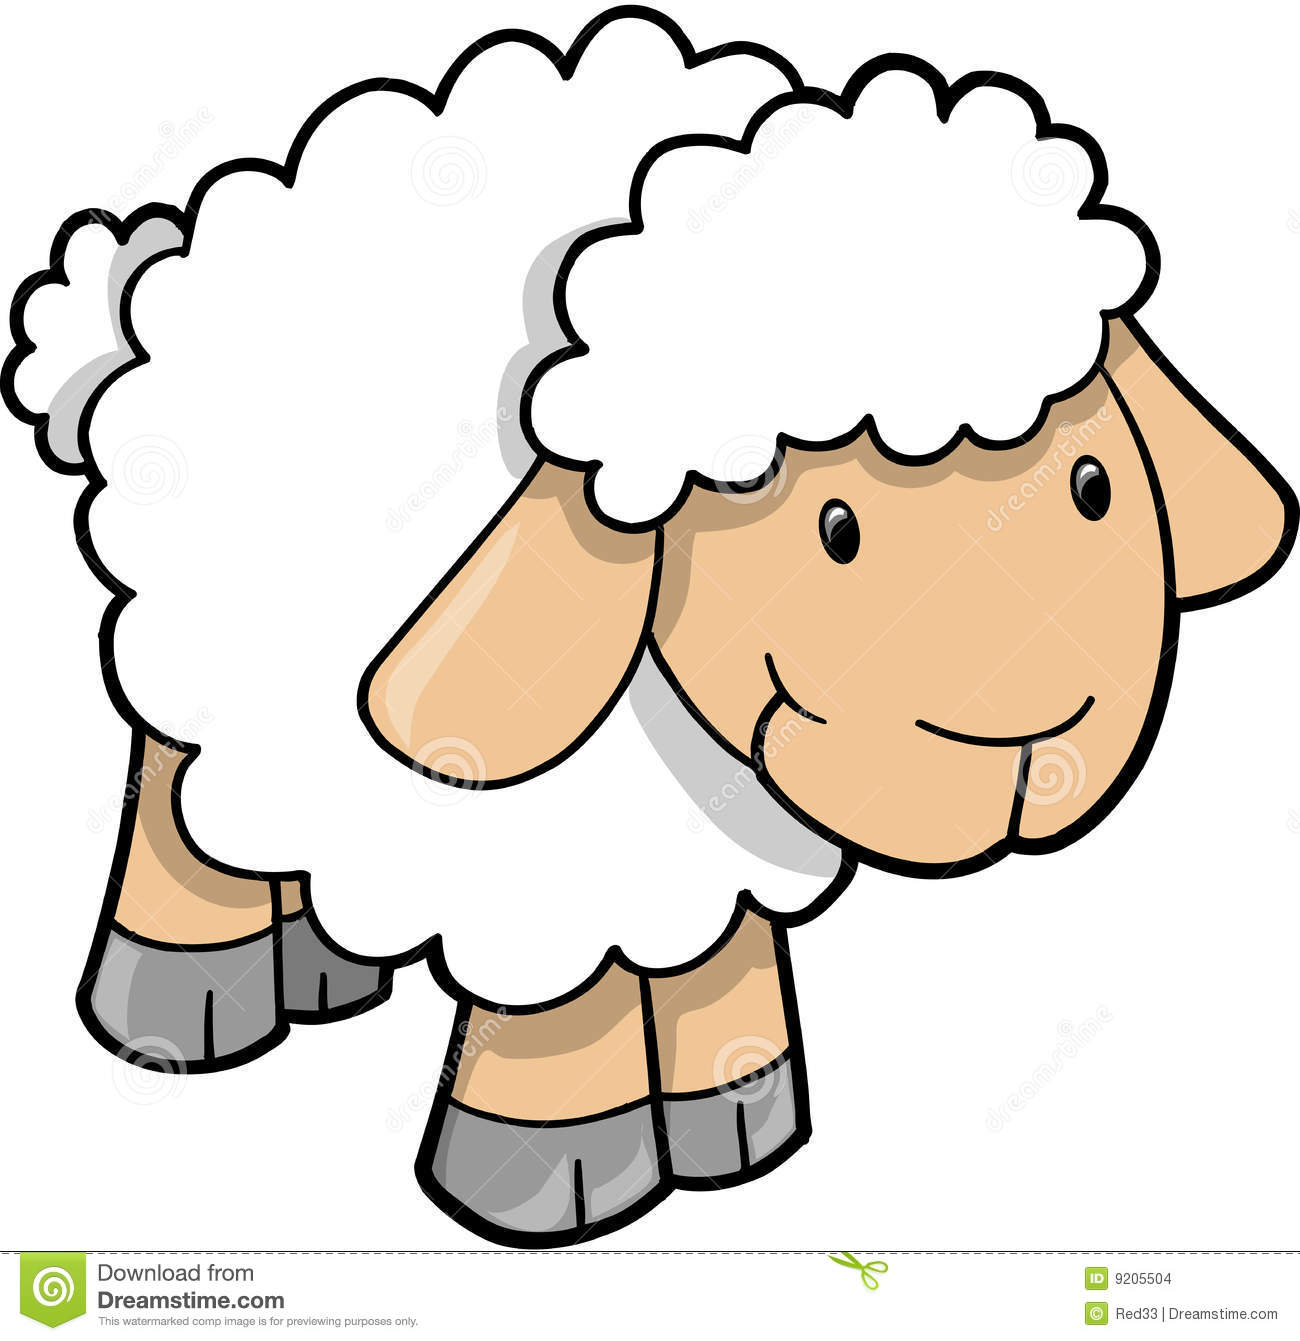 Clipart sheep. Top free image